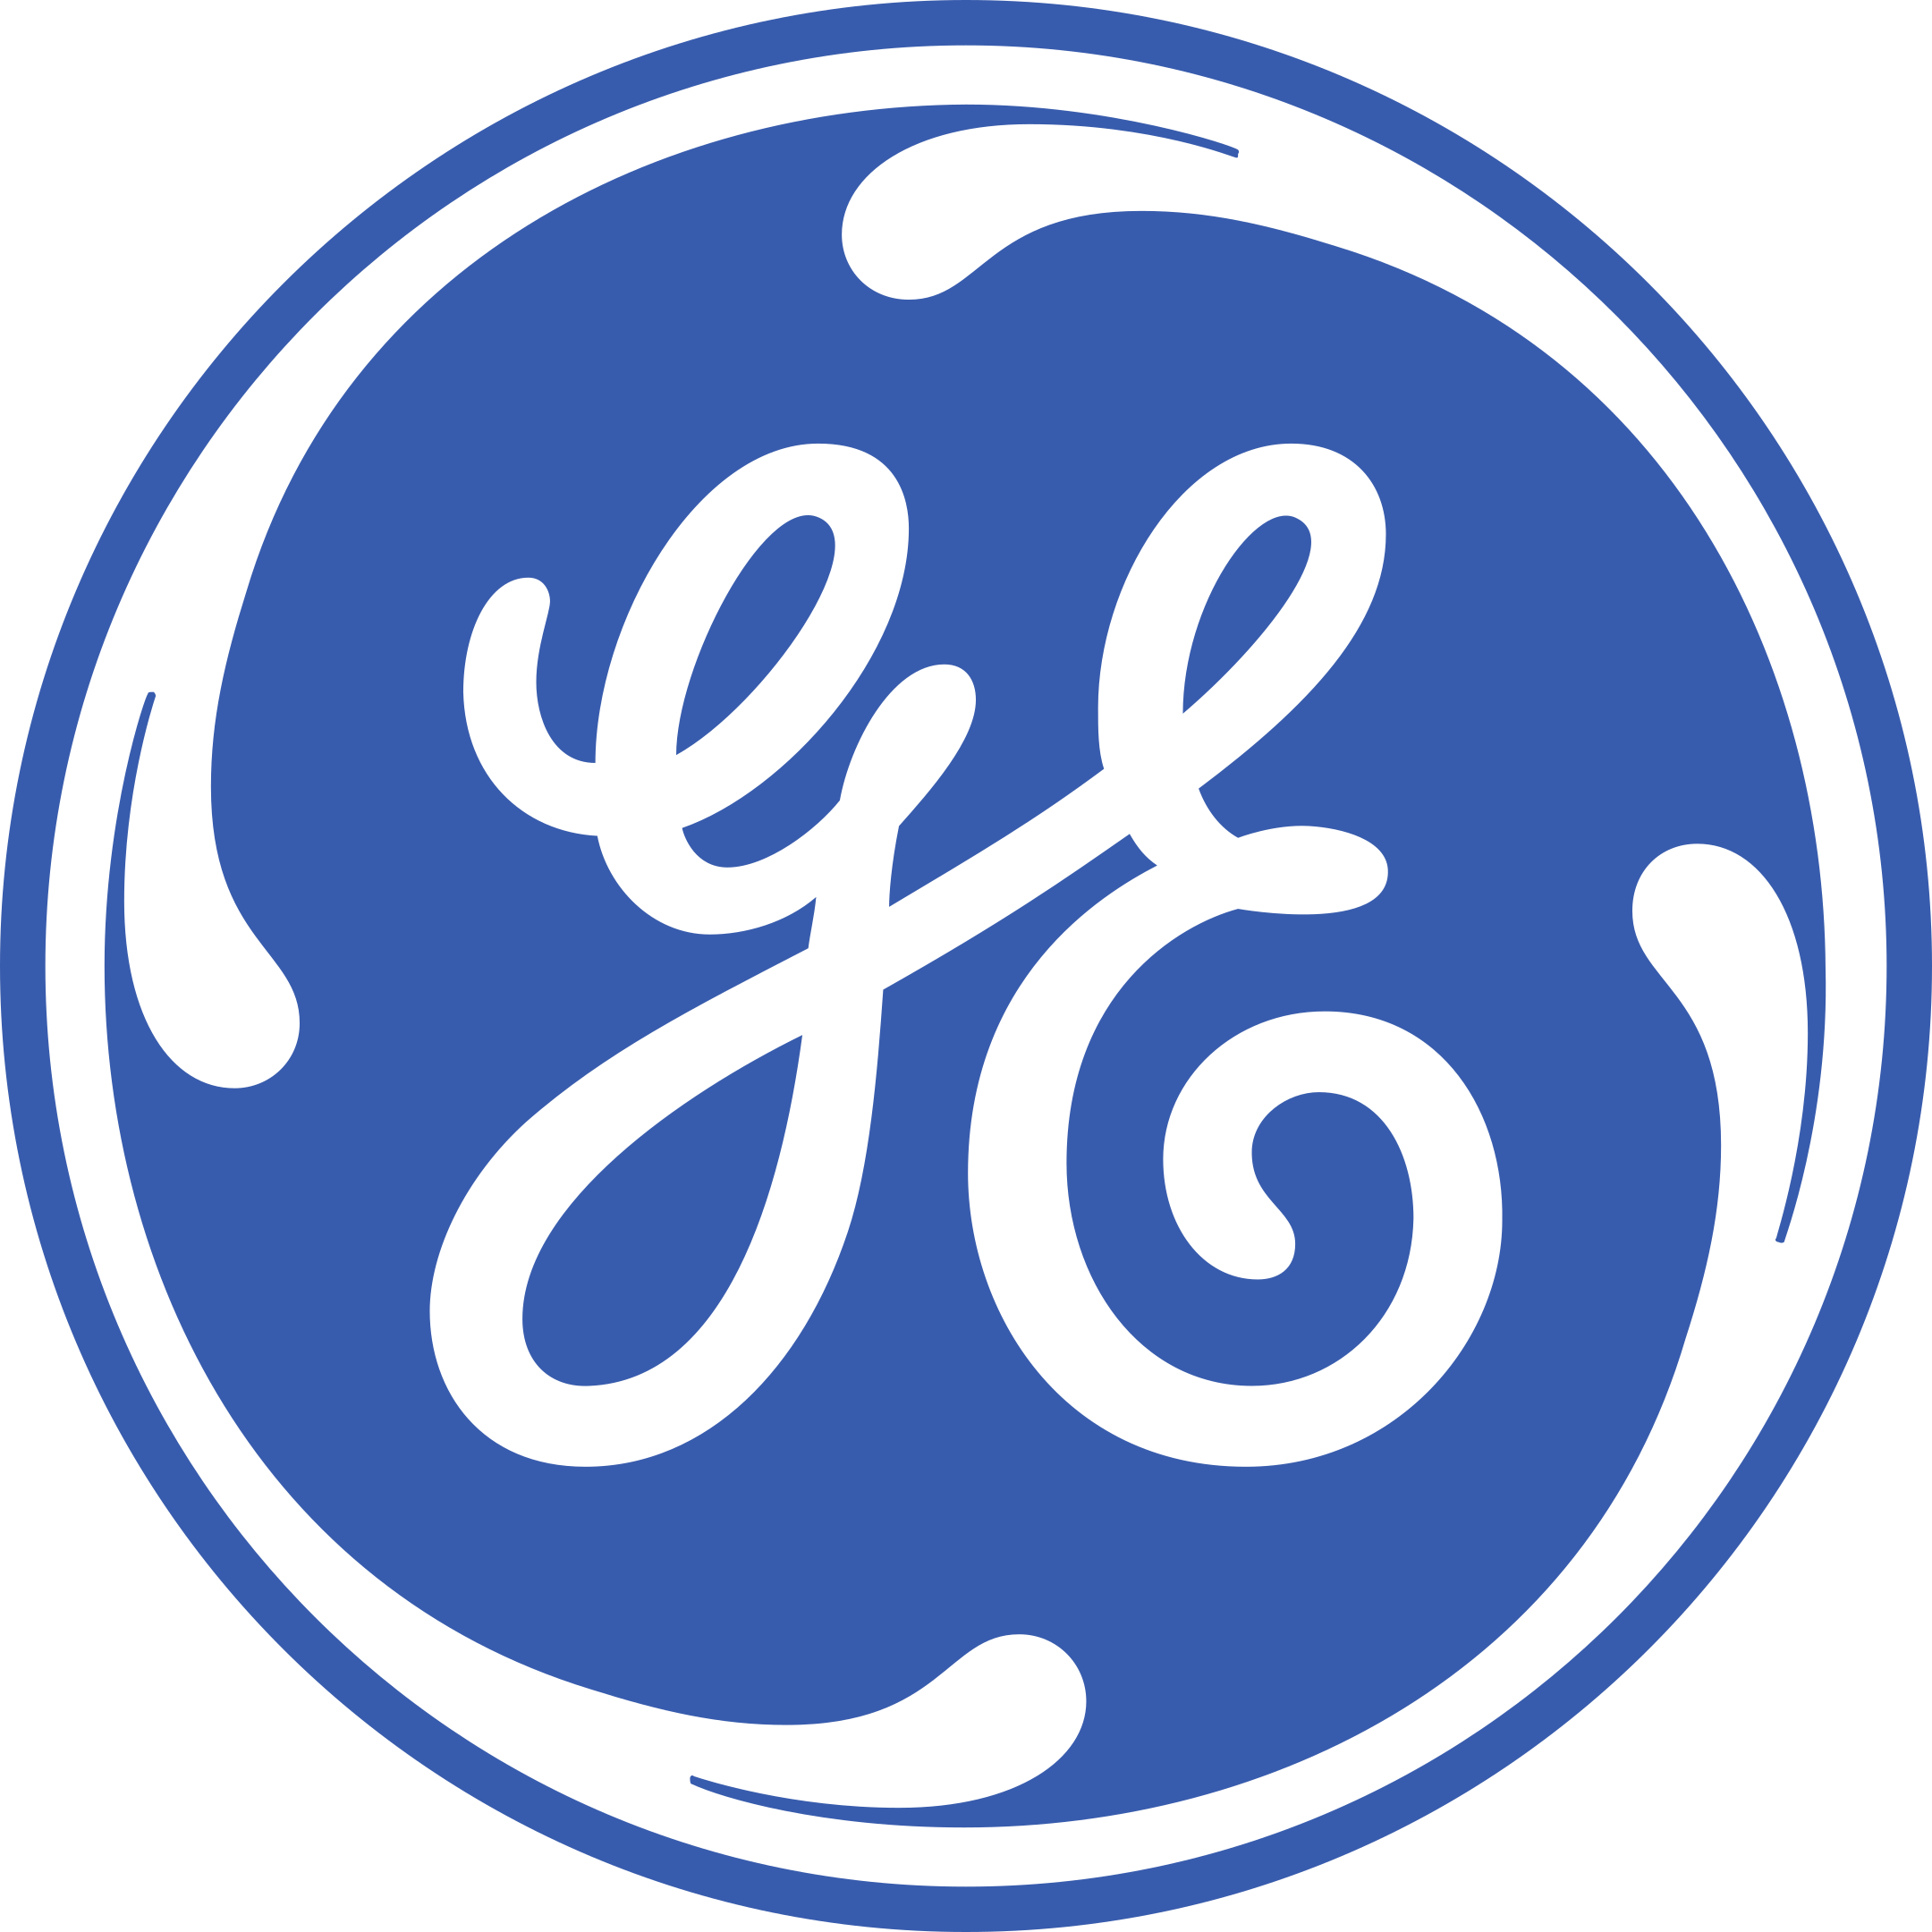 ge general electric logo 1 - GE – General Electric Logo